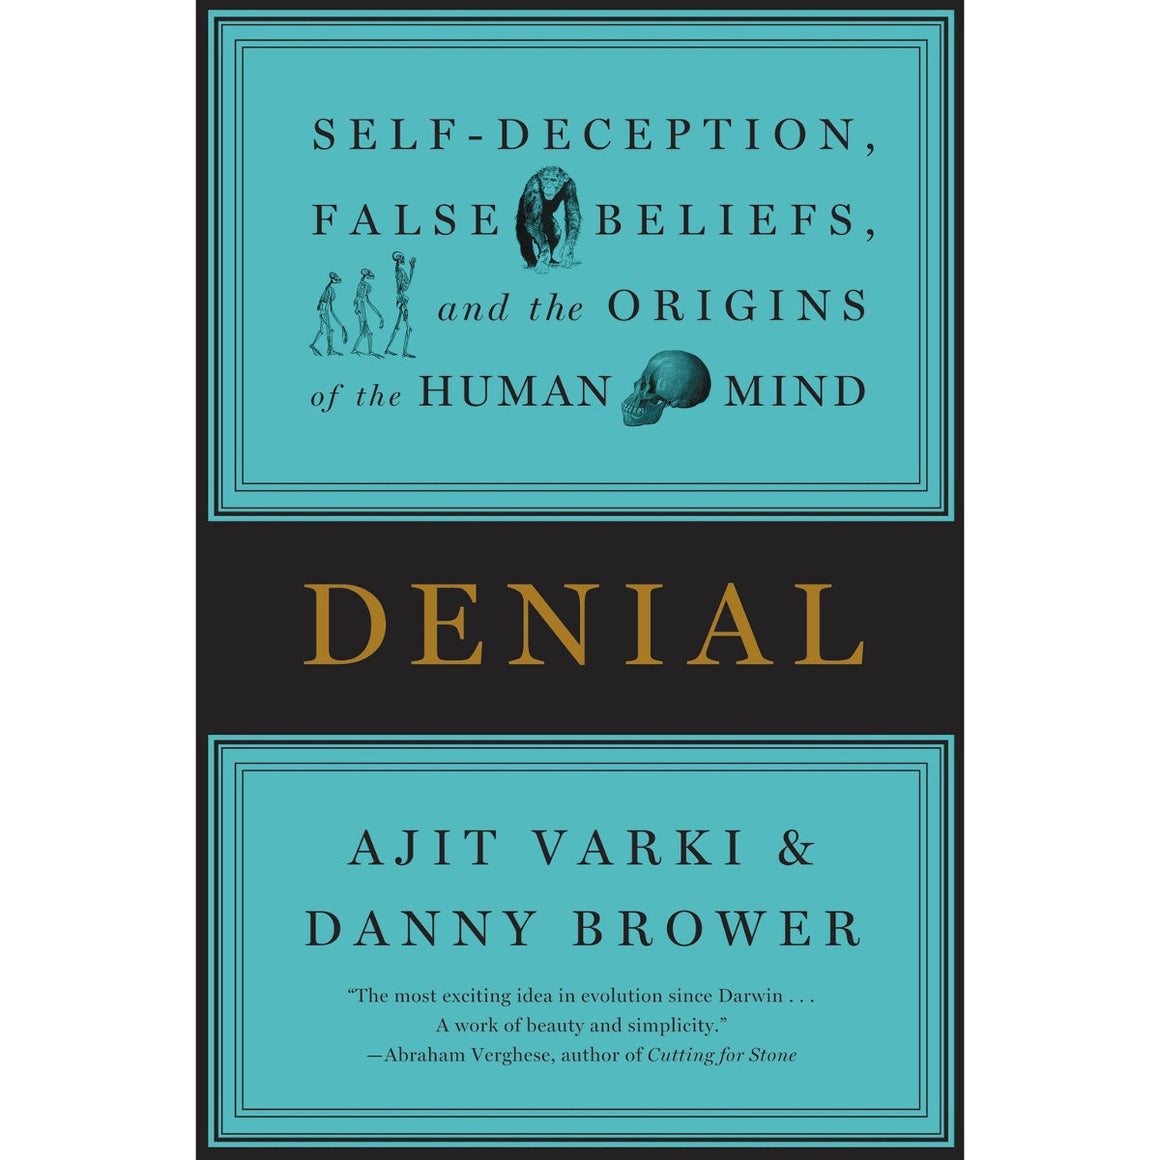 Denial: Self-Deception, False Beliefs, and the Origins of the Human Mind